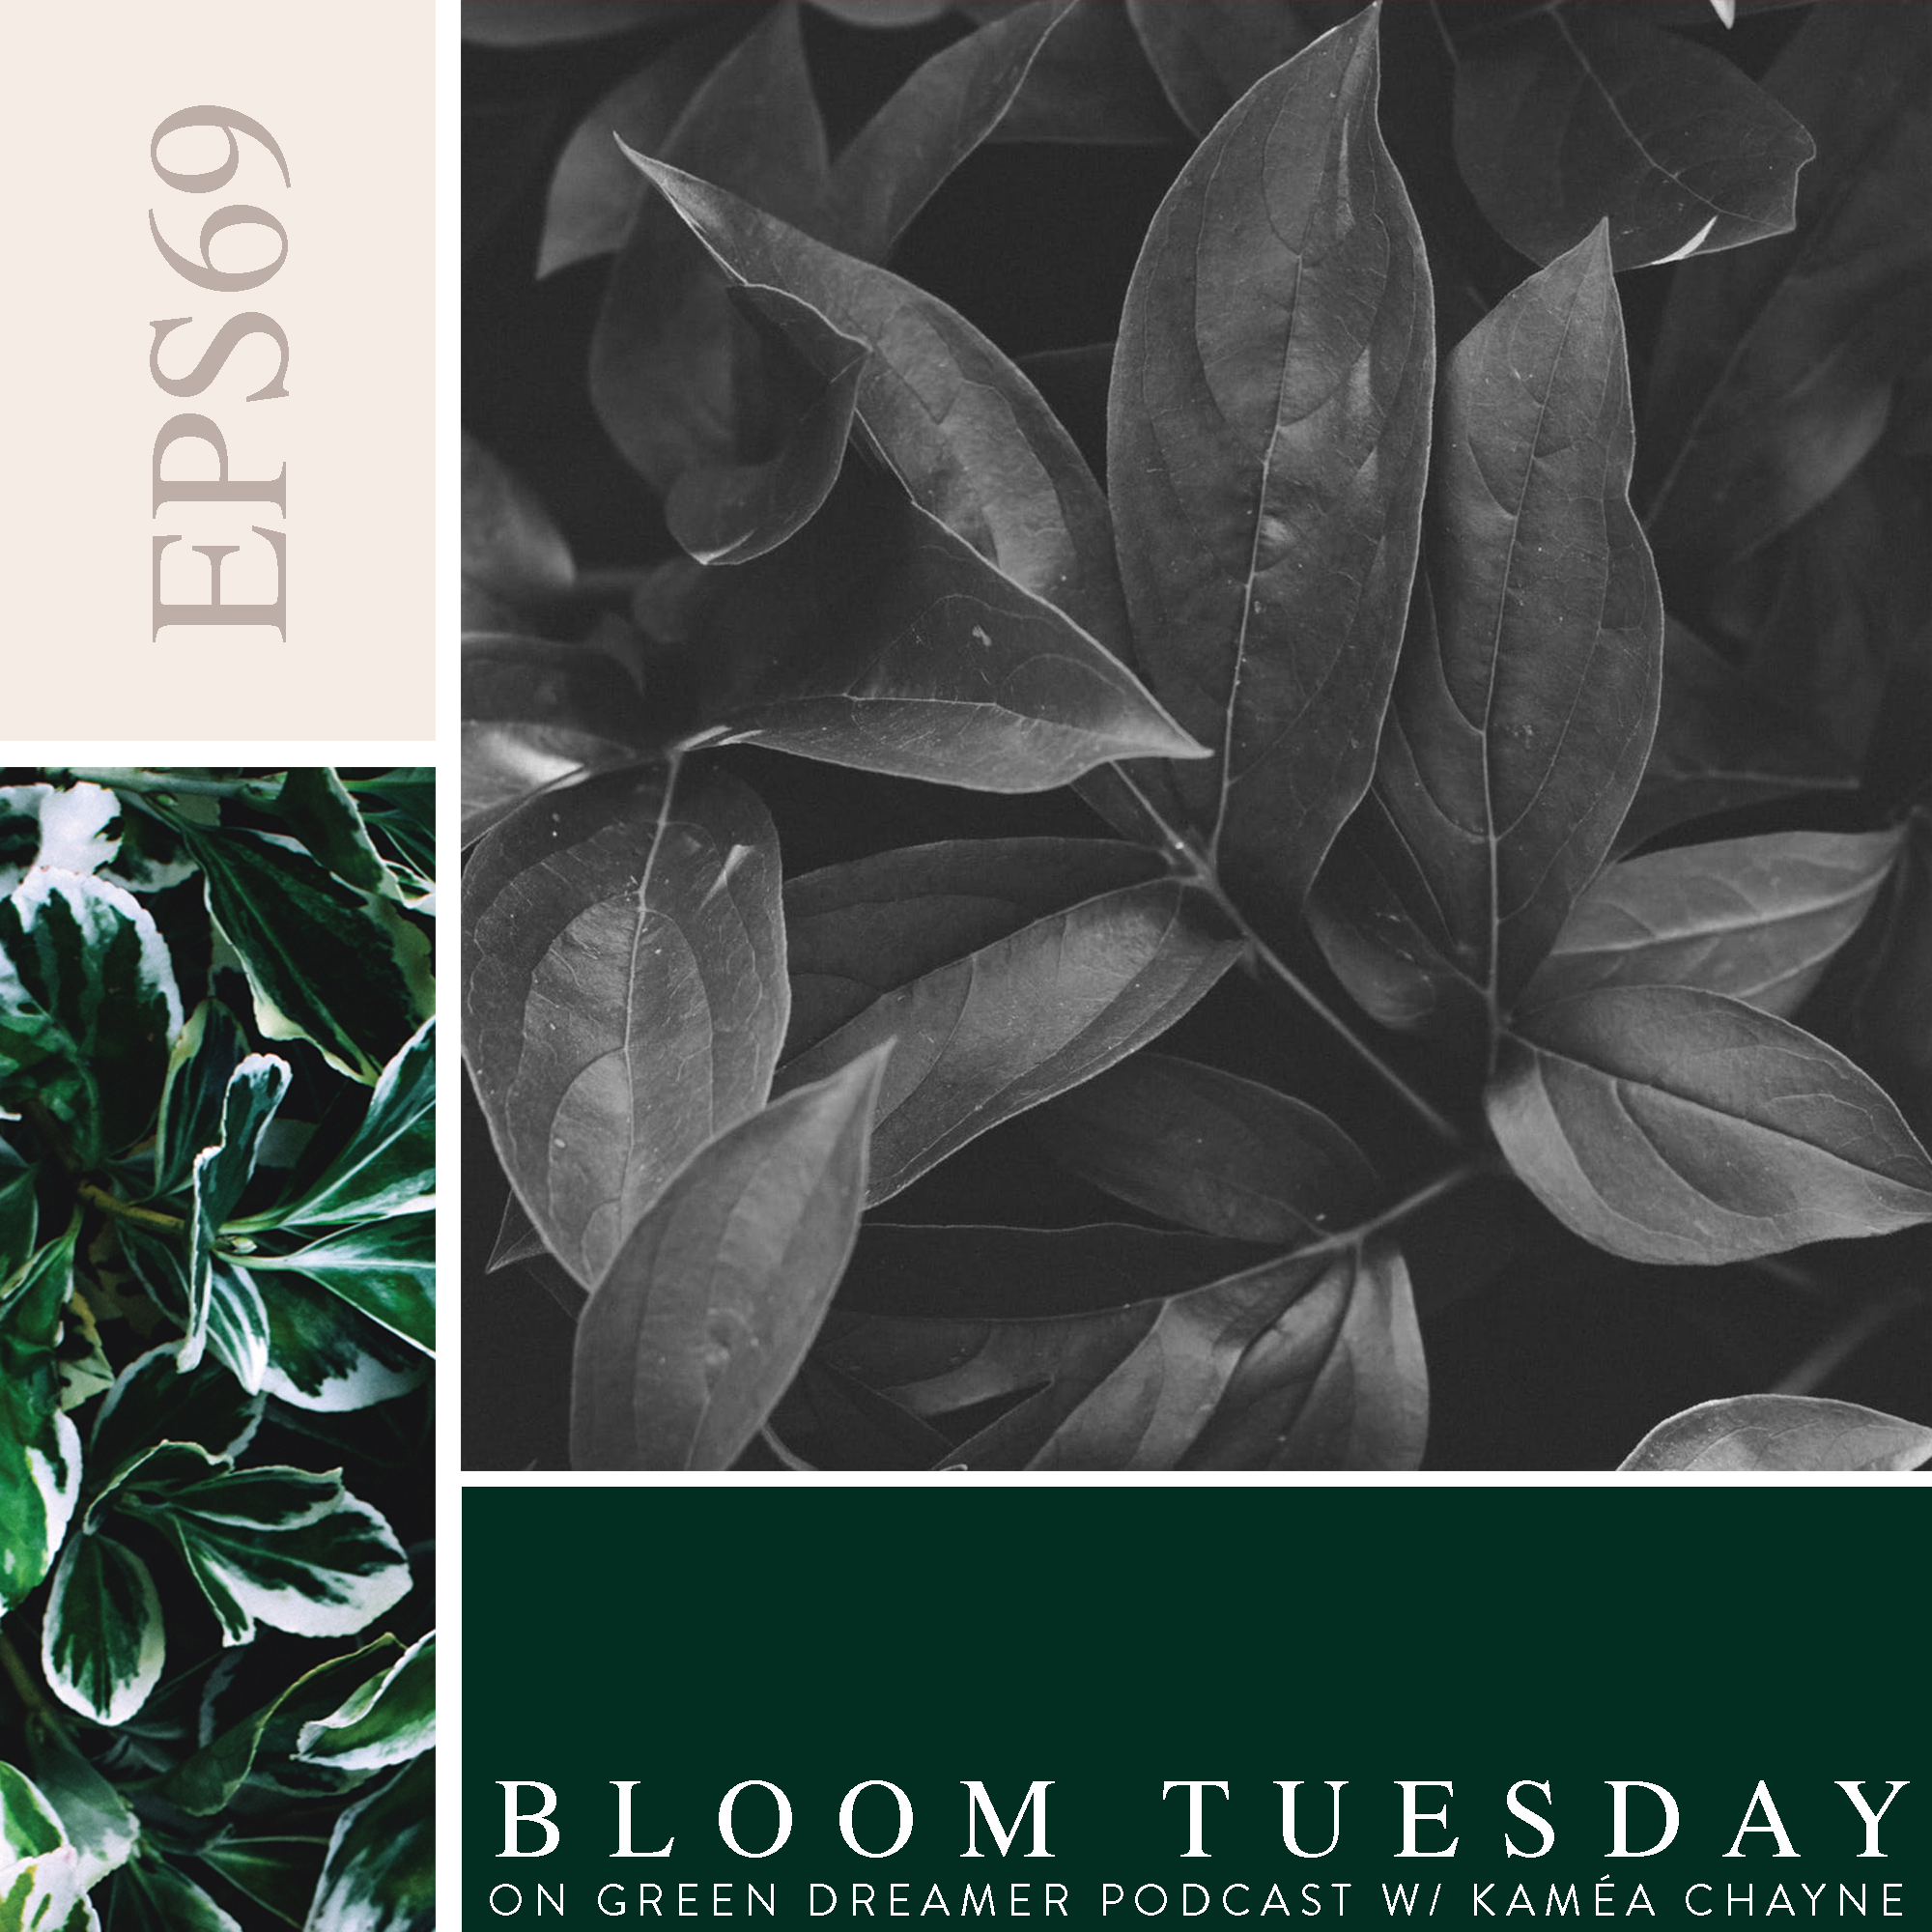 69) BLOOM TUESDAY